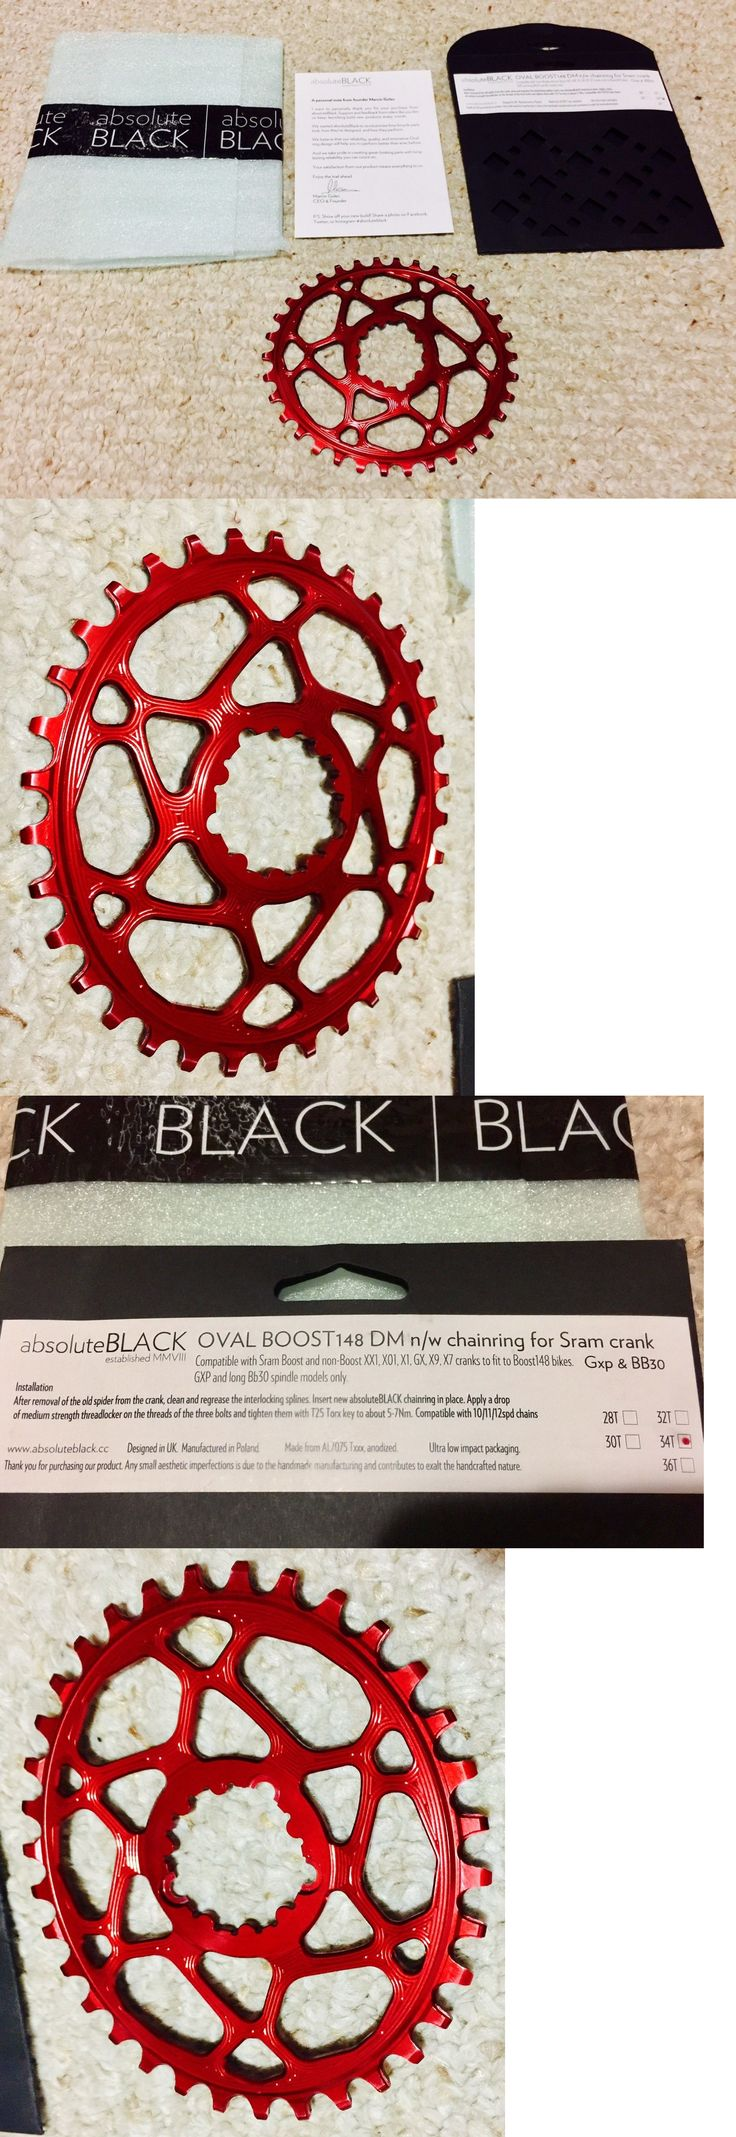 Chainrings and BMX Sprockets 177811: Red Color Absolute Black Sram Oval Boost148 Direct Mount Traction Chainring 34T -> BUY IT NOW ONLY: $59 on eBay!